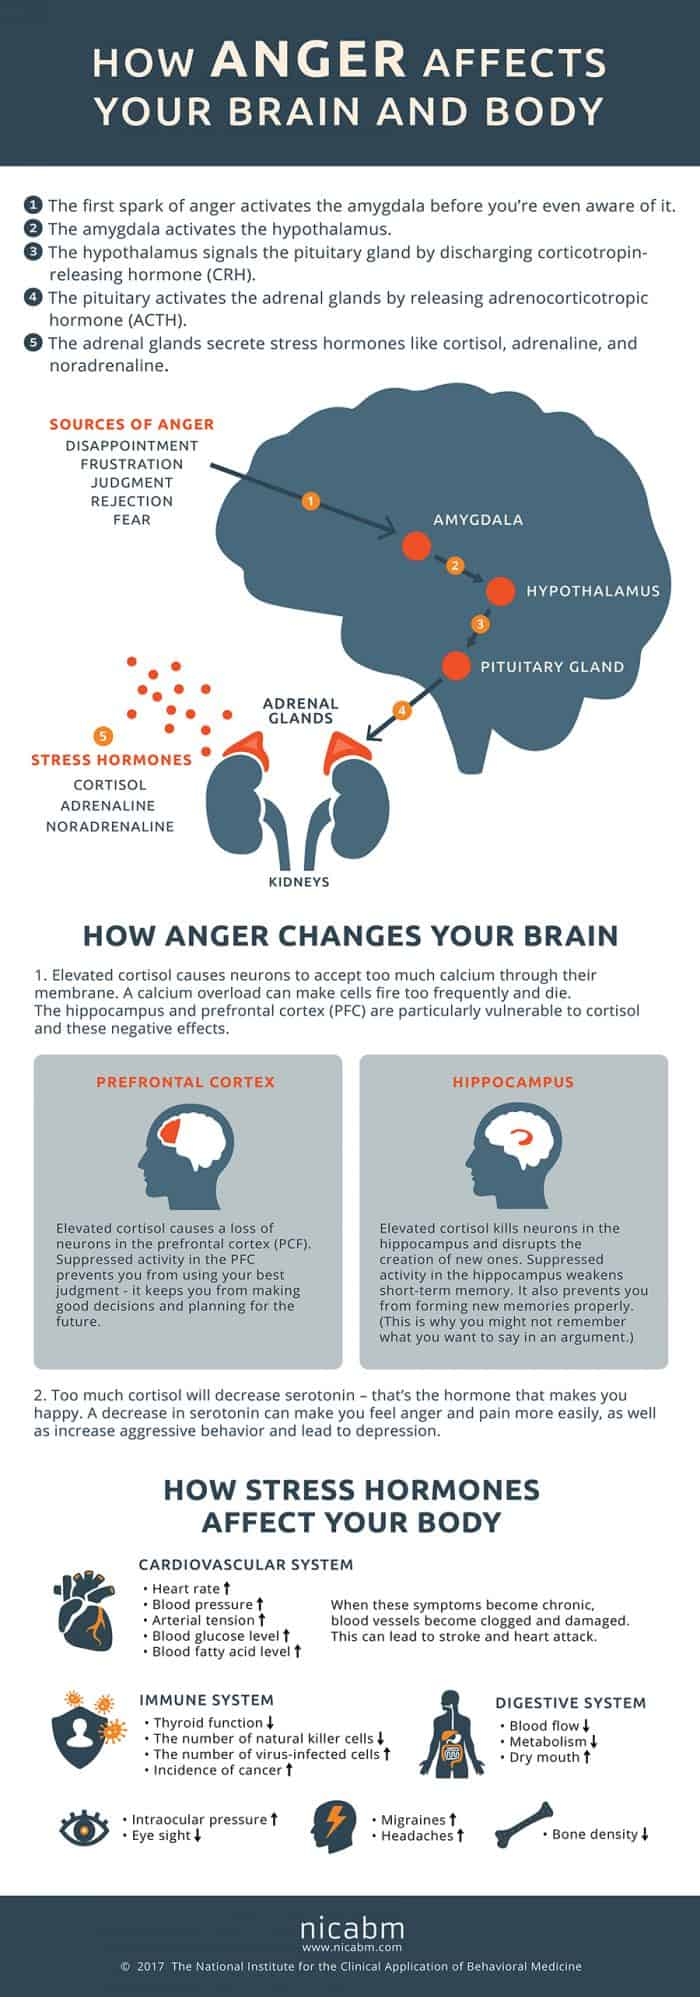 an infographic depicting the potential effects of anger on the brain and body